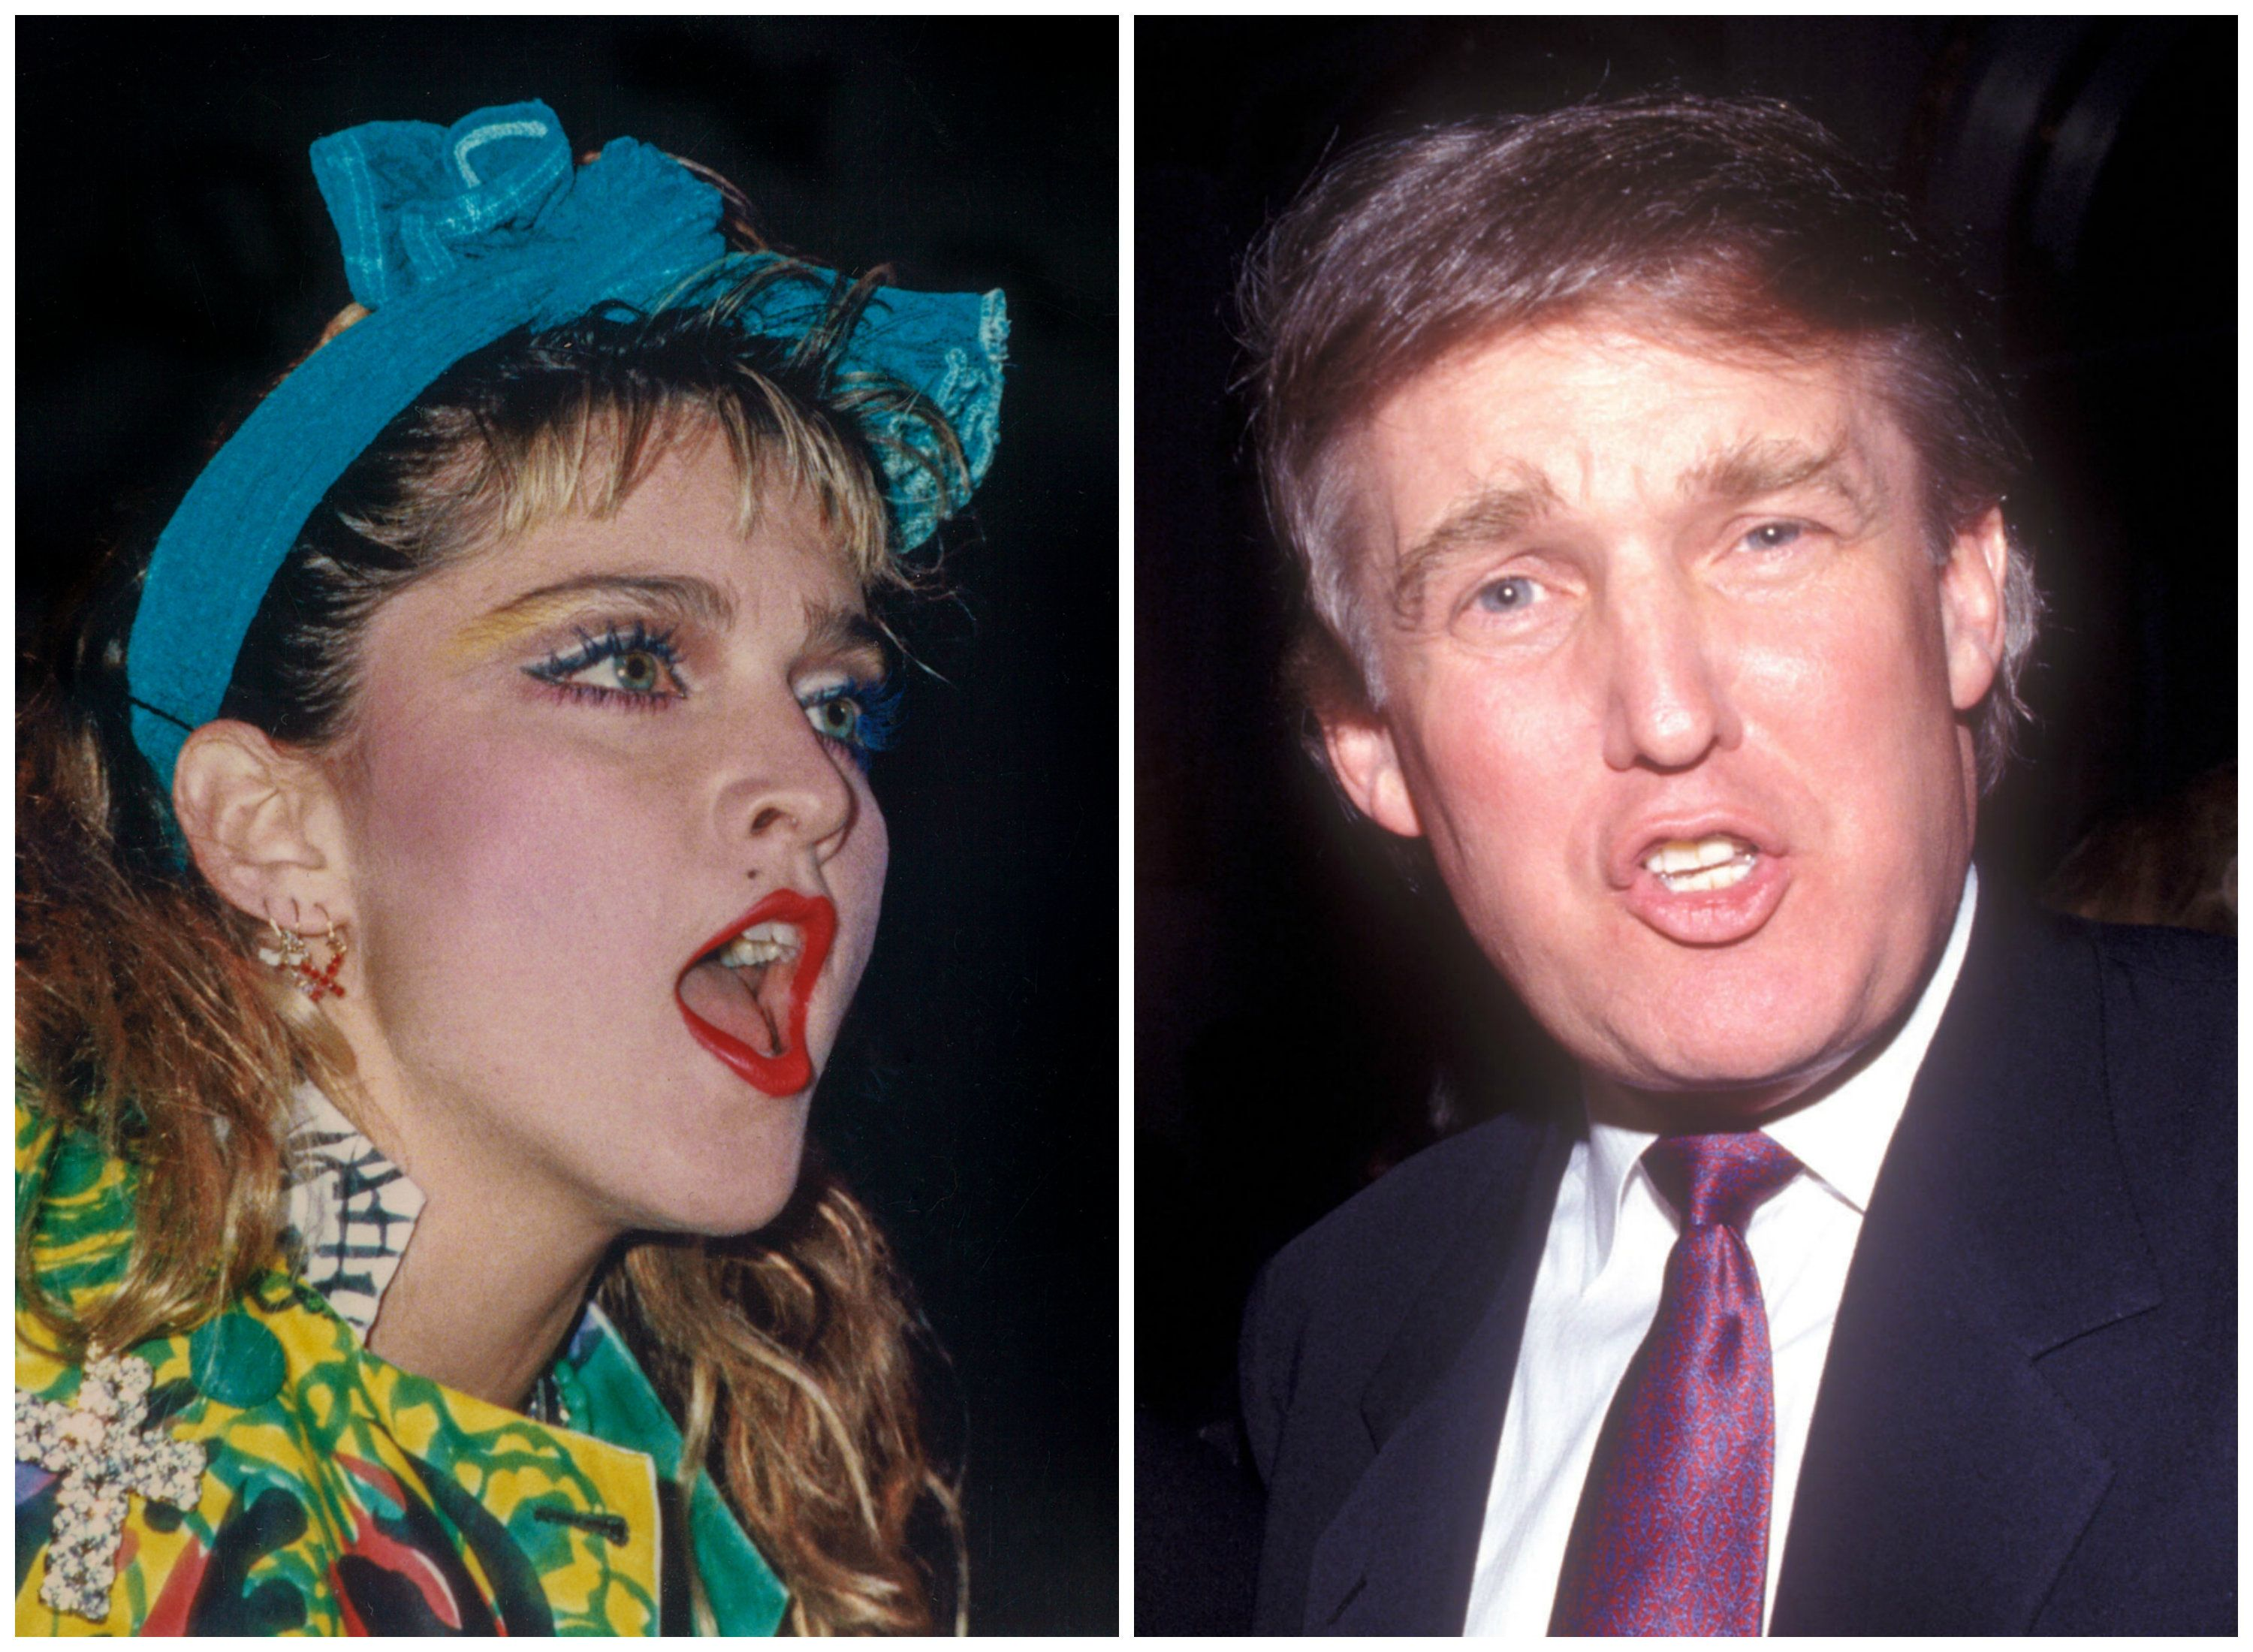 Donald Trump once pretended to be his own public relations representative to spread the rumor that Madonna had tried to